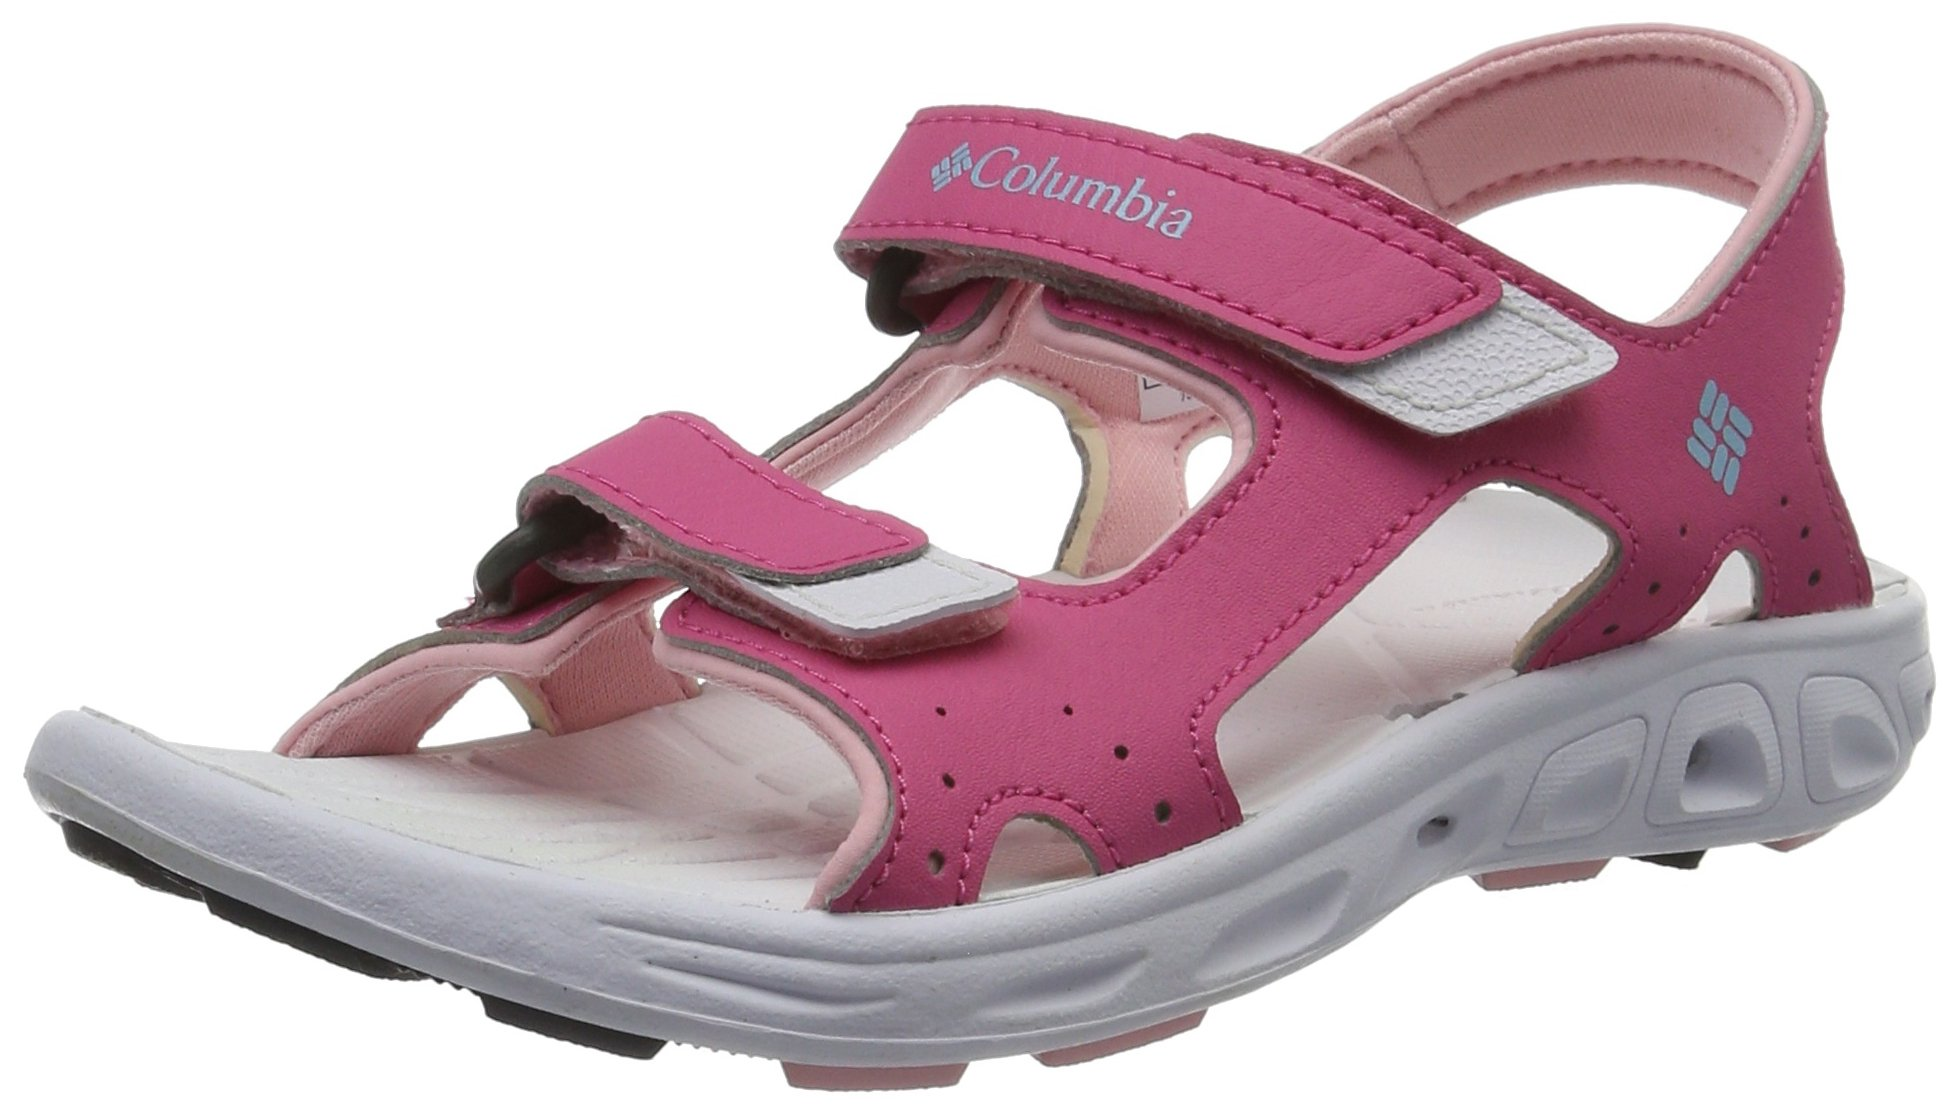 Columbia Unisex Youth TECHSUN Vent Sport Sandal, Wild Geranium, Cupid, 1 Regular US Little Kid